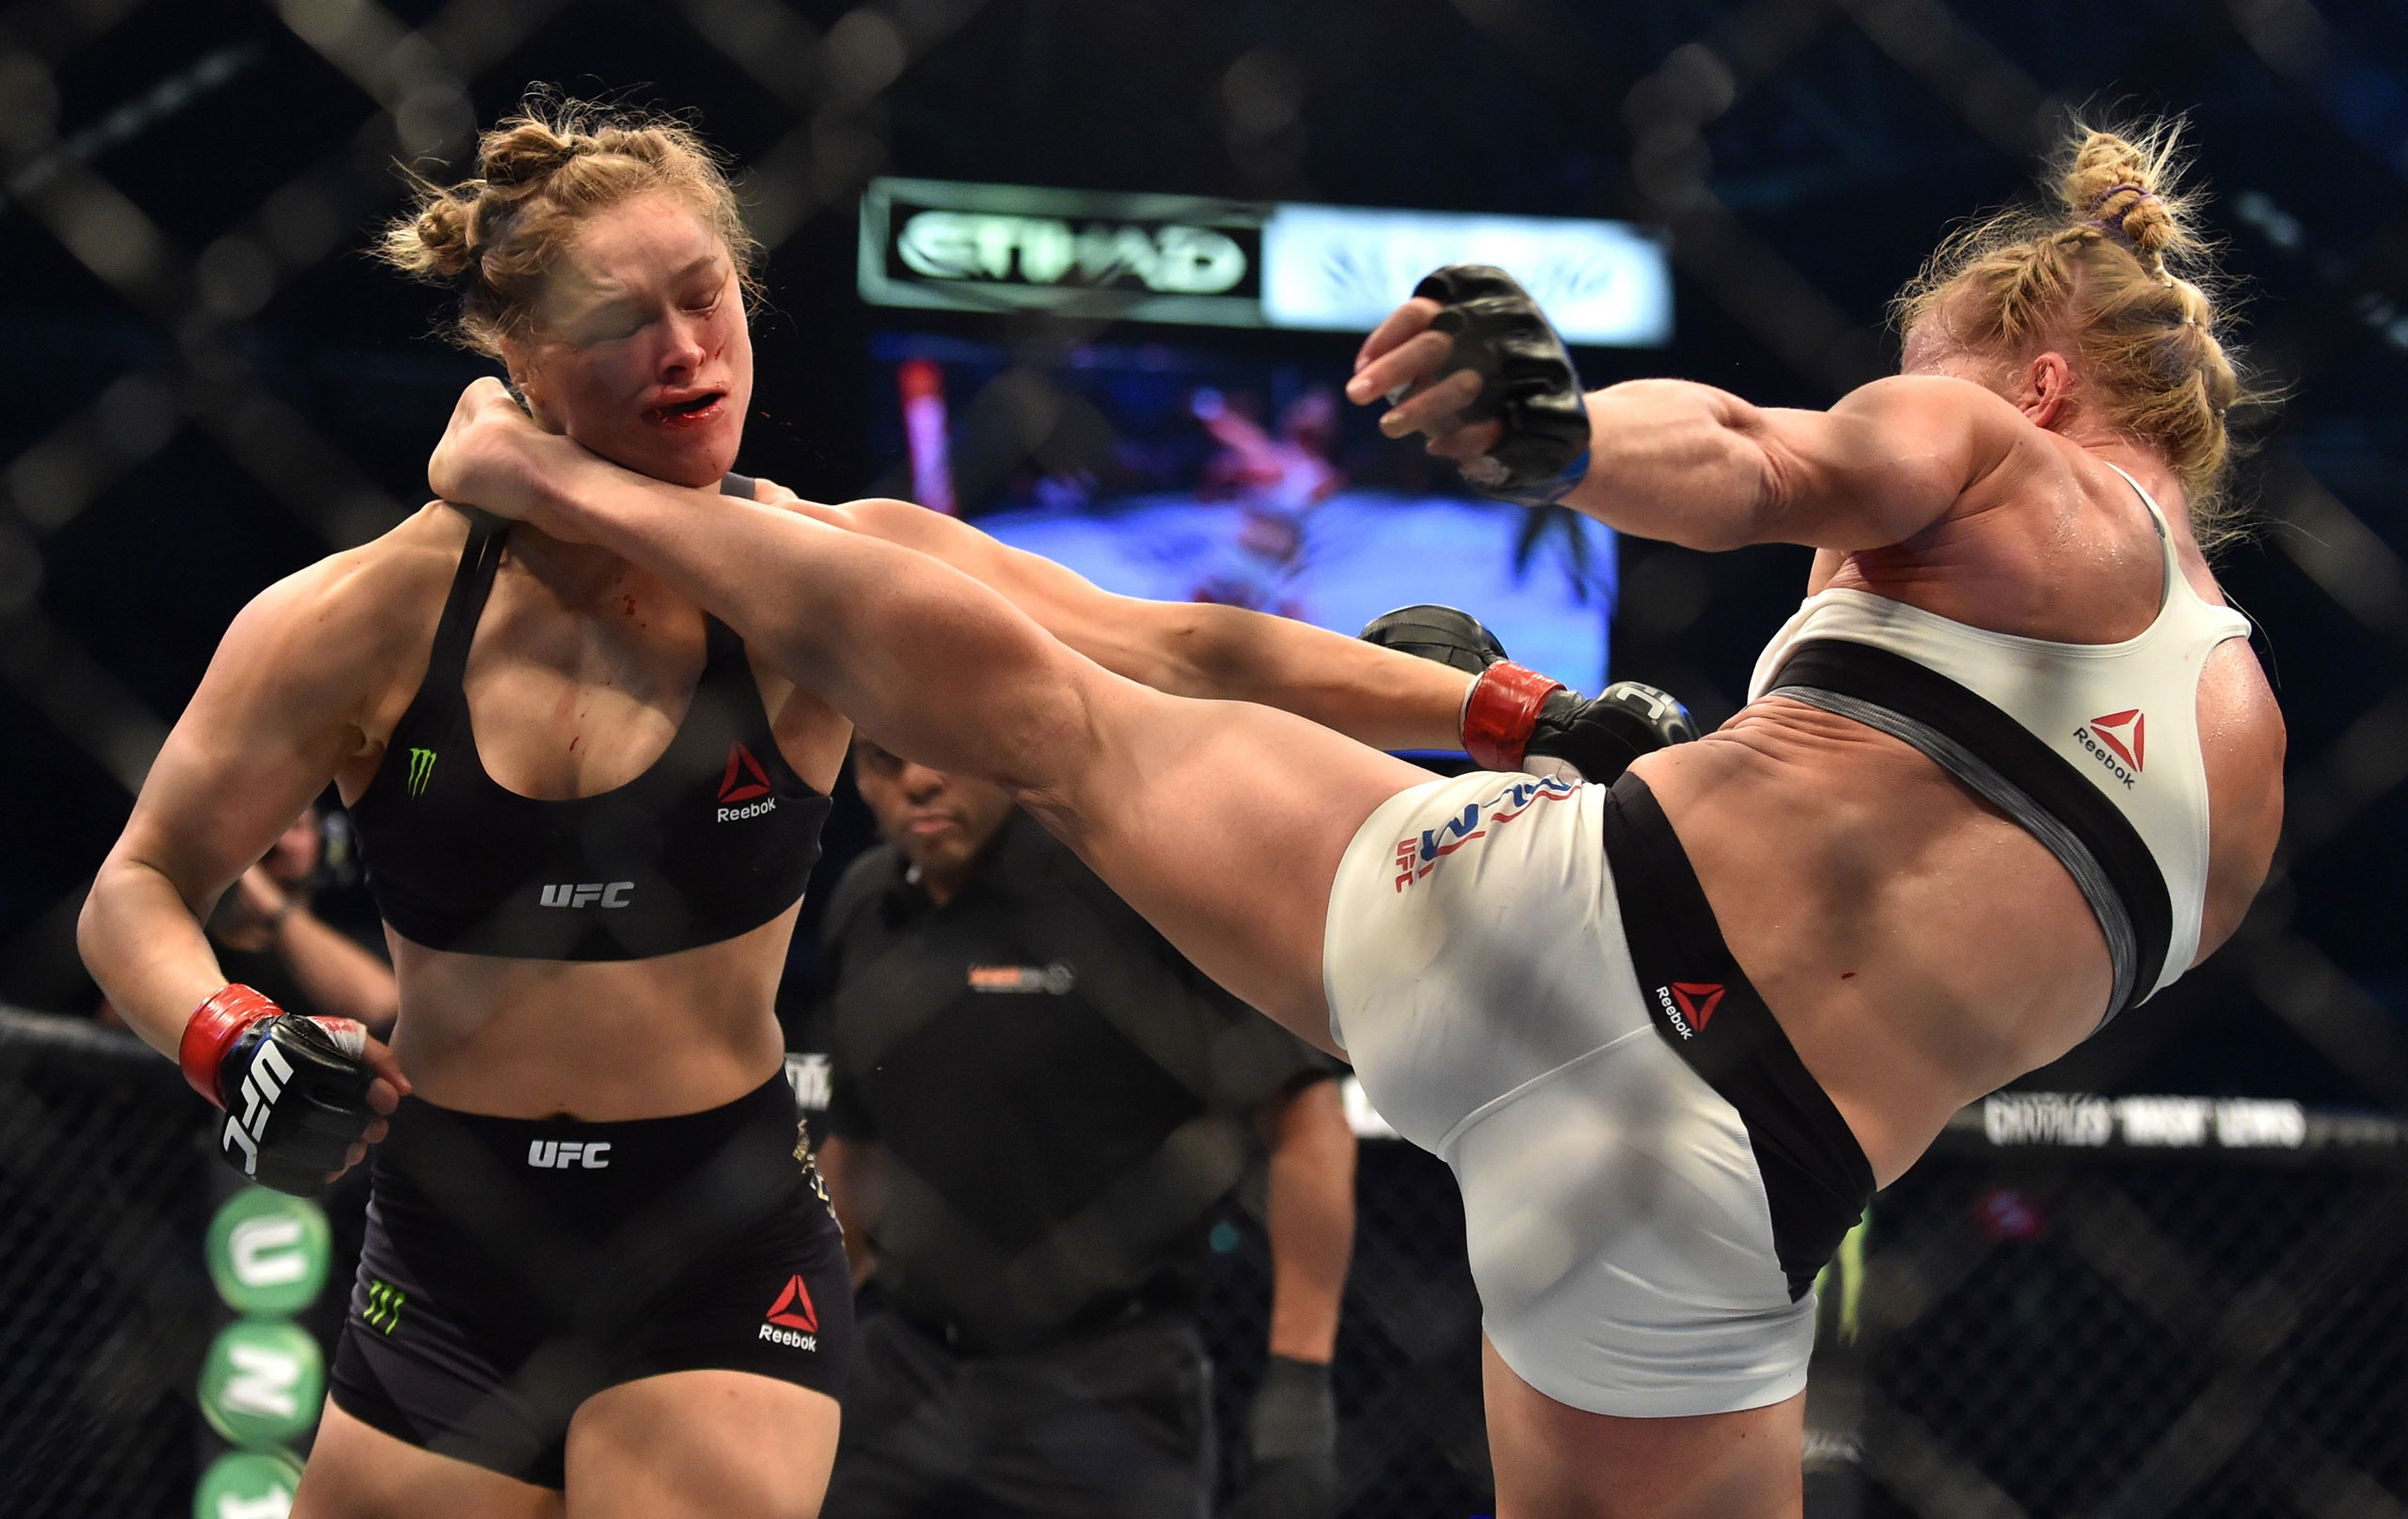 Holly Holm of the U.S. (pictured right) lands a kick to the neck to knock out compatriot Ronda Rousey and wins the Ultimate Fighting Championship (UFC) title fight in Melbourne, Australia. Nov. 15, 2015.